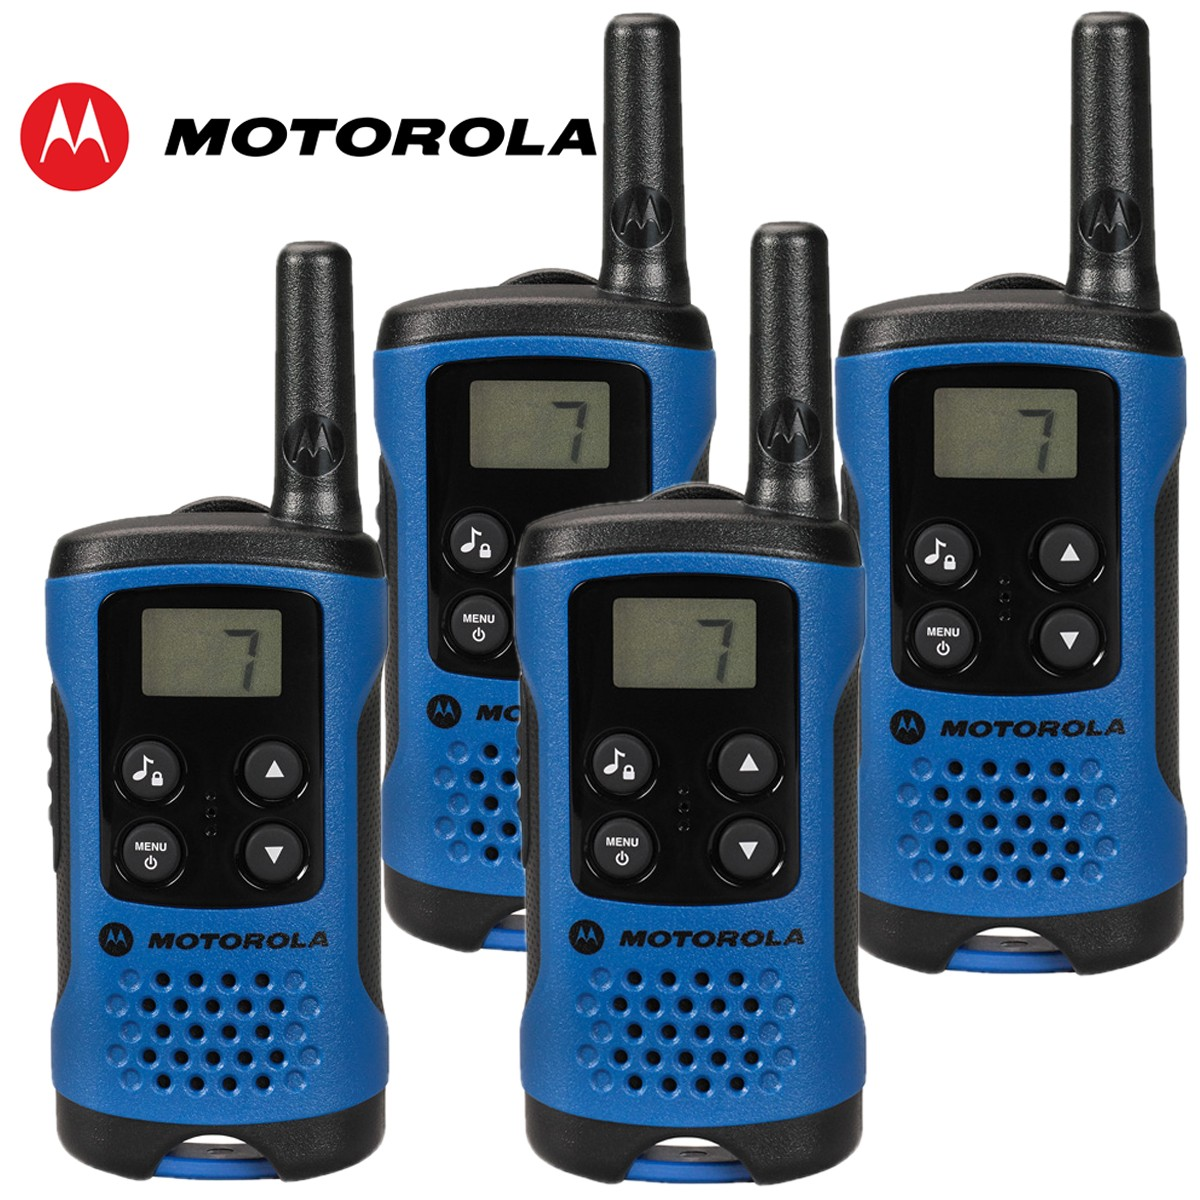 4km motorola tlkr t41 walkie talkie 2 two way pmr 446 compact radio set quad. Black Bedroom Furniture Sets. Home Design Ideas